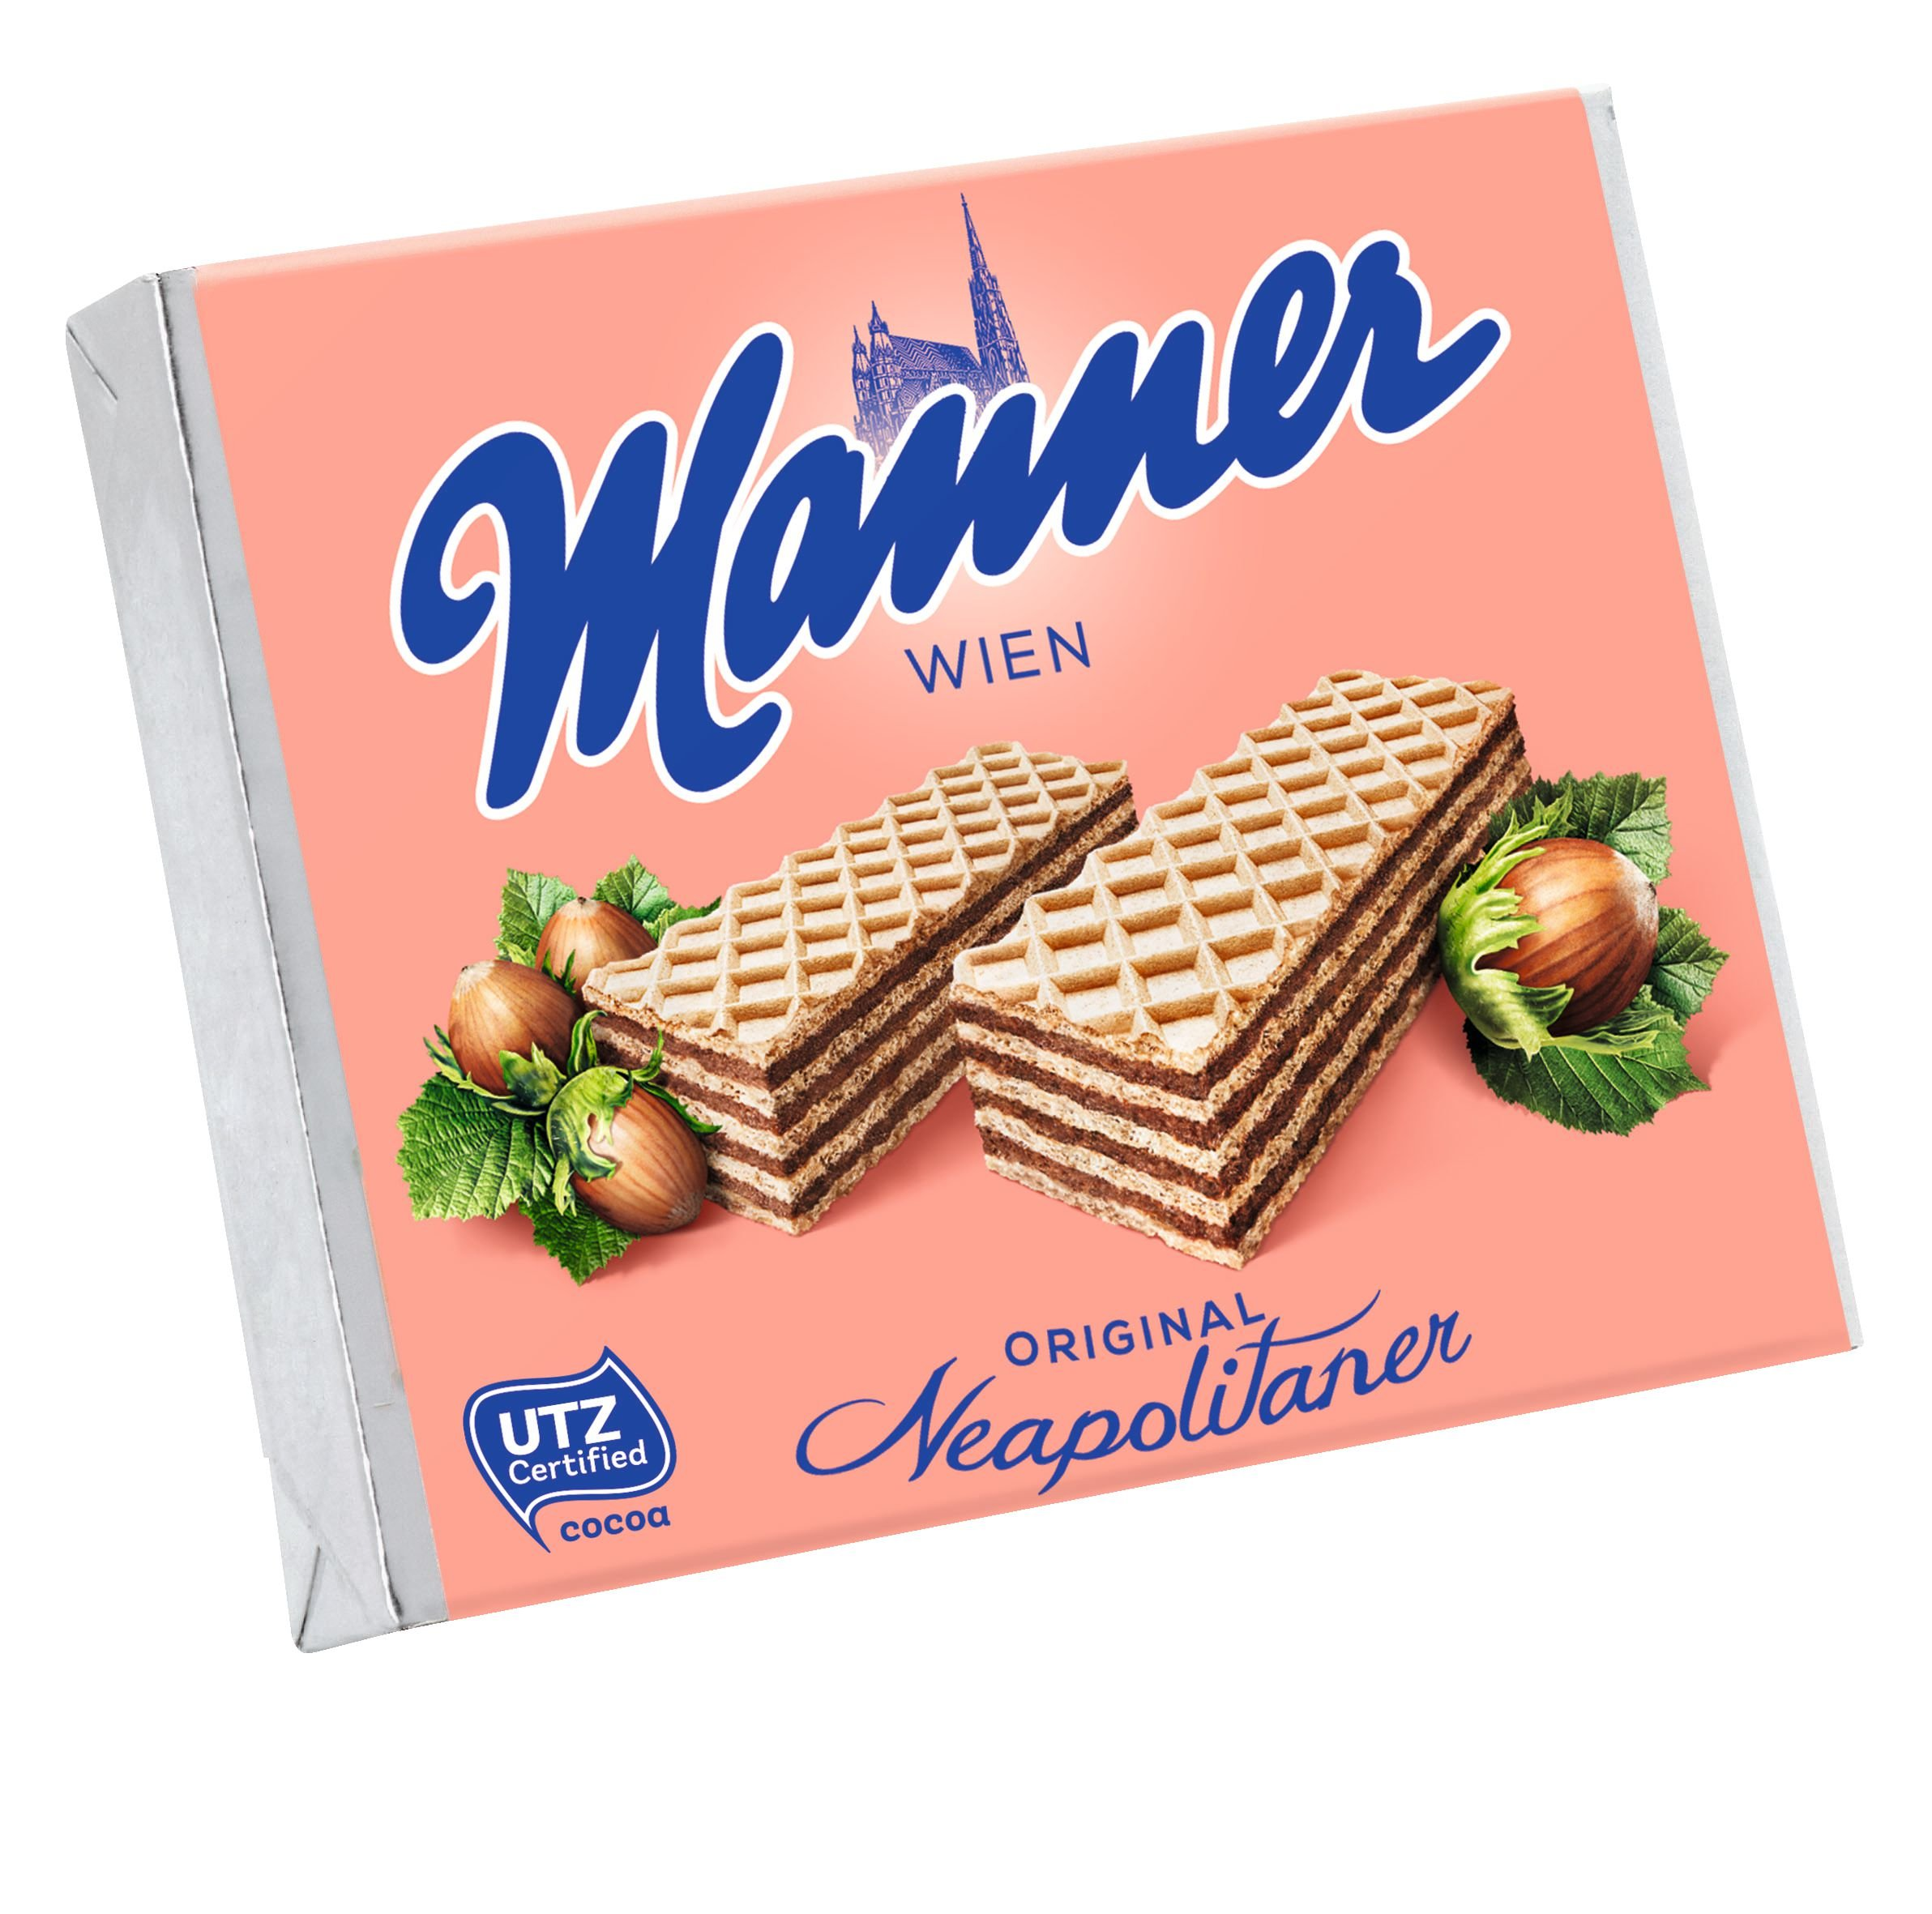 Hazelnut Cream Filled Wafers (Manner) 72g by Manner (Image #1)